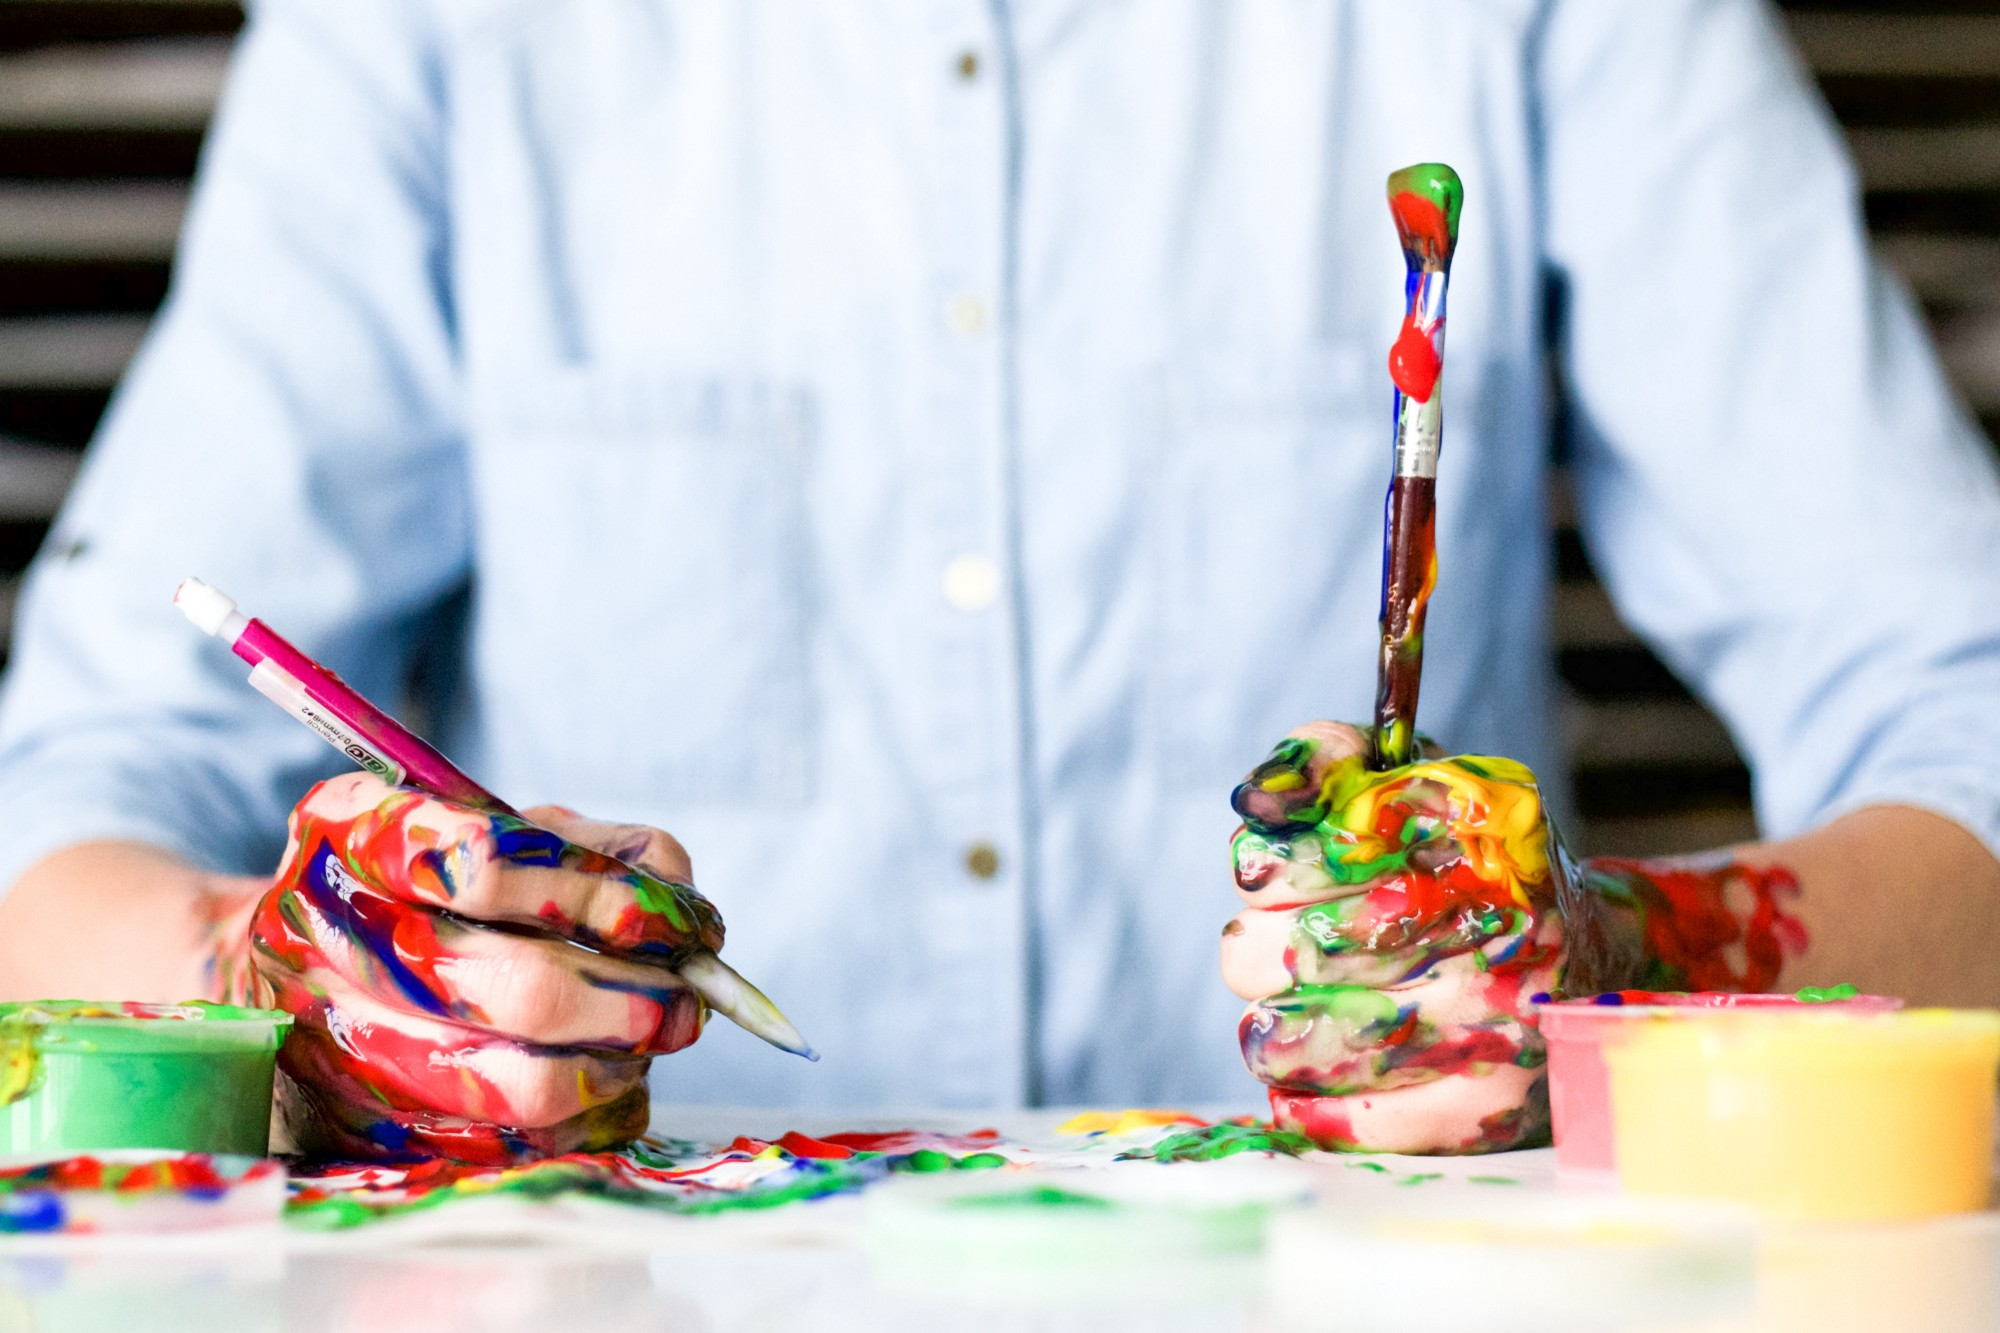 man in a blue button up dress shirt, with paint brushes in one hand and a pencil in the other. Both hands are covered in paint.